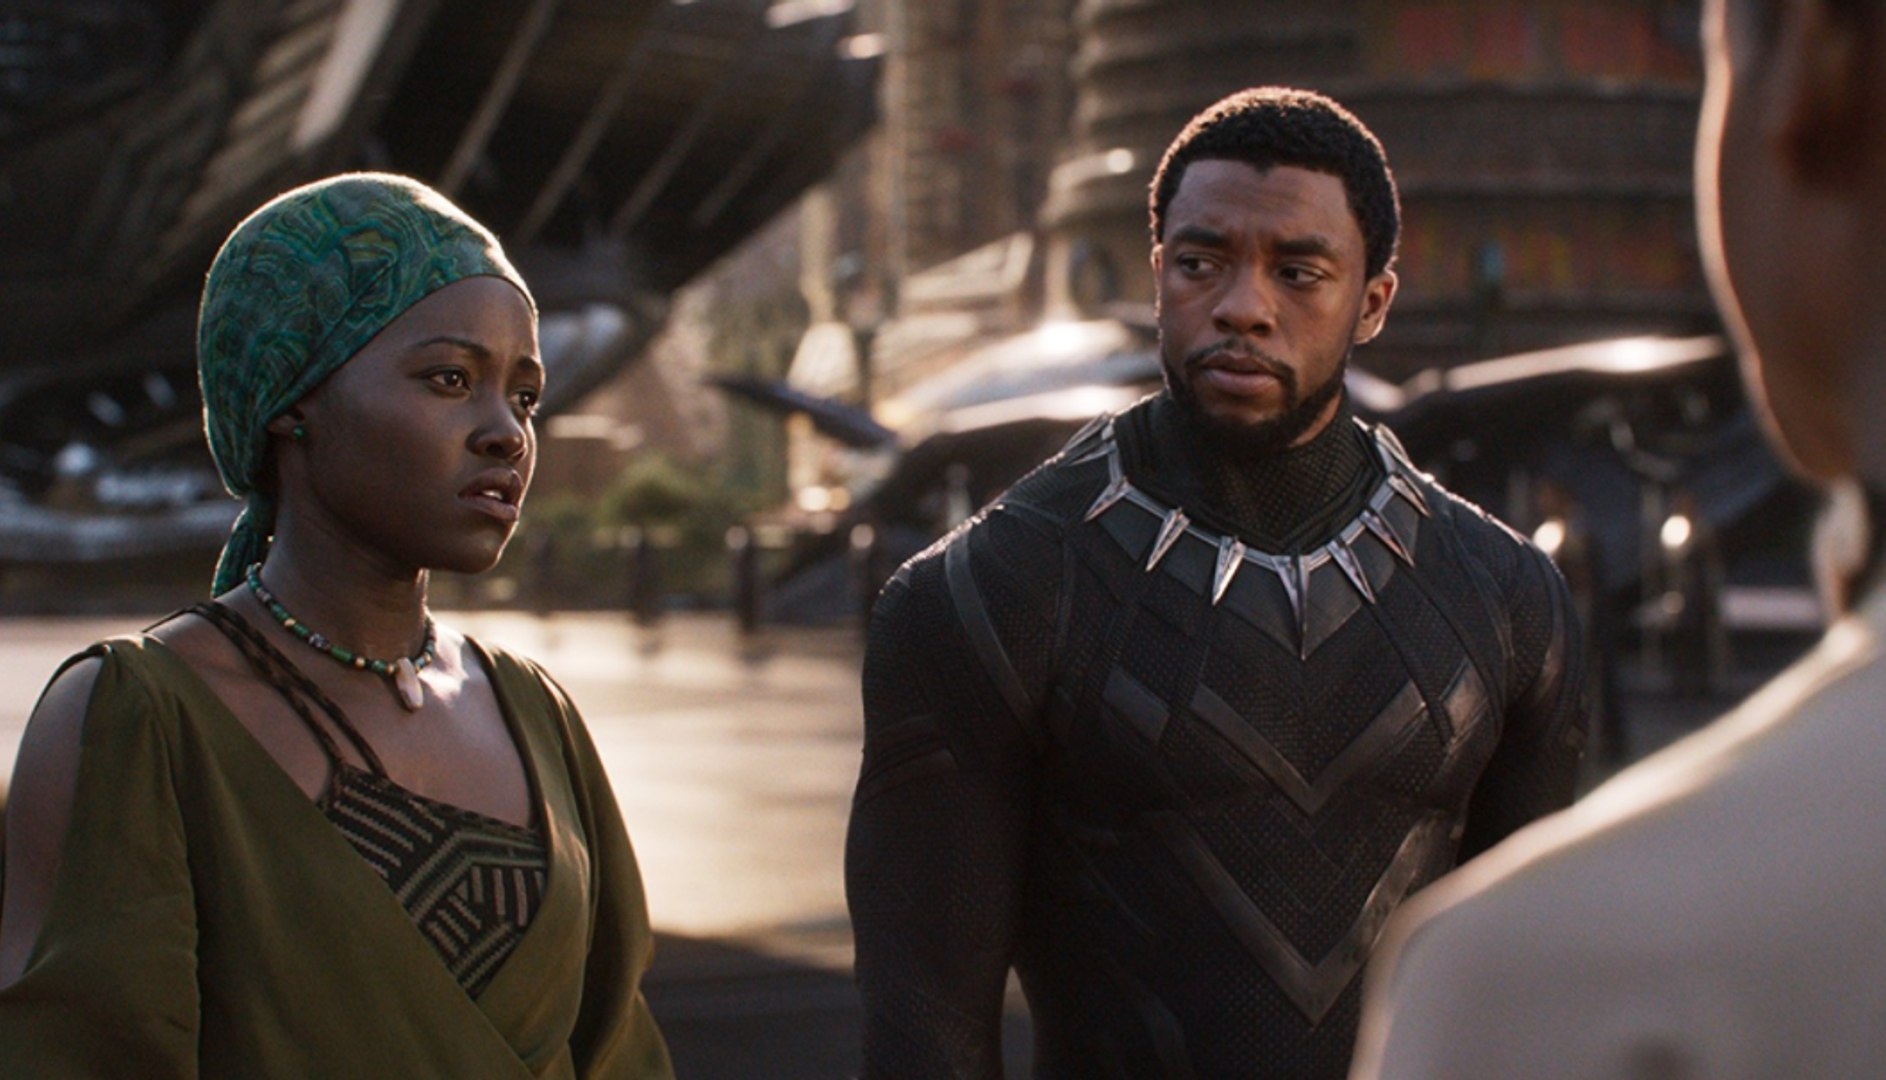 Black Panther (2018) English Film Free▫ FULL  MOVIE